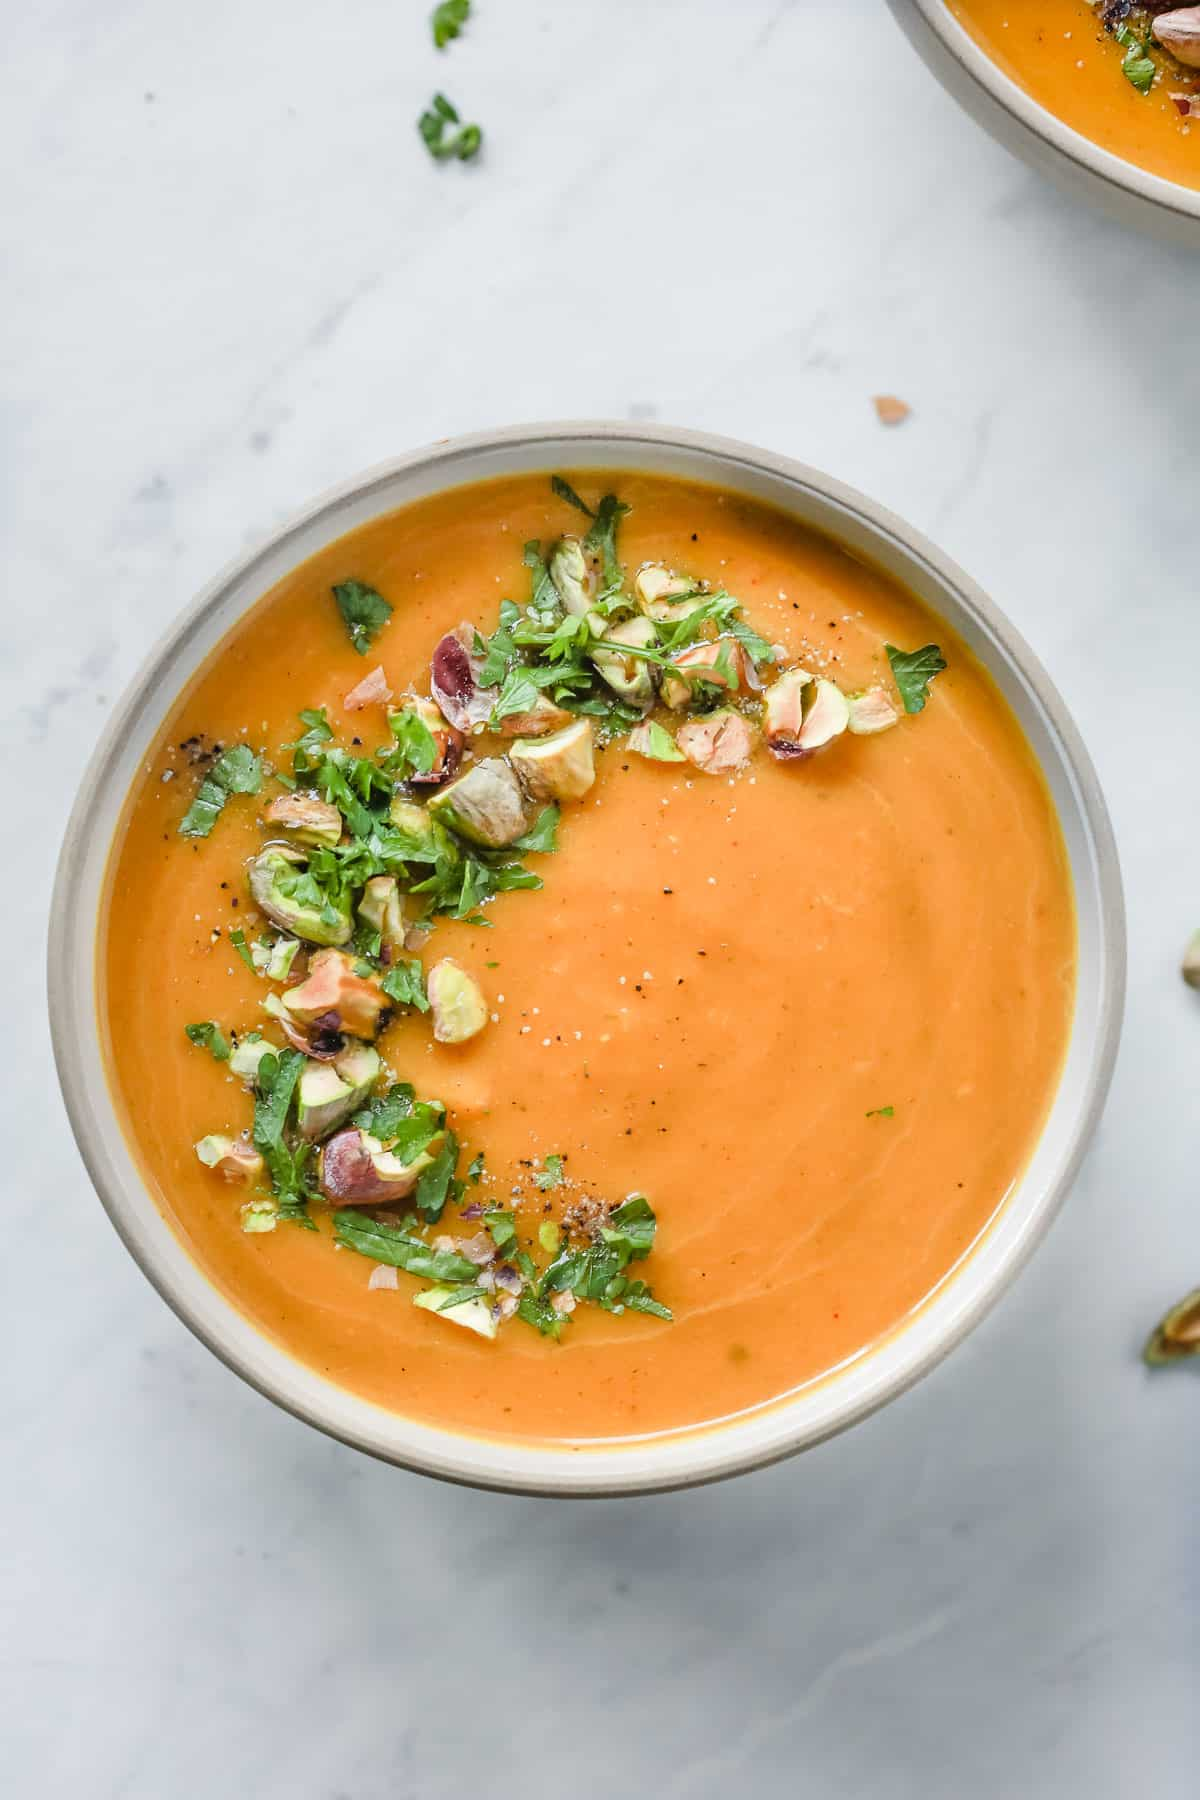 Overhead photo of a white bowl with butternut squash soup with garnish.